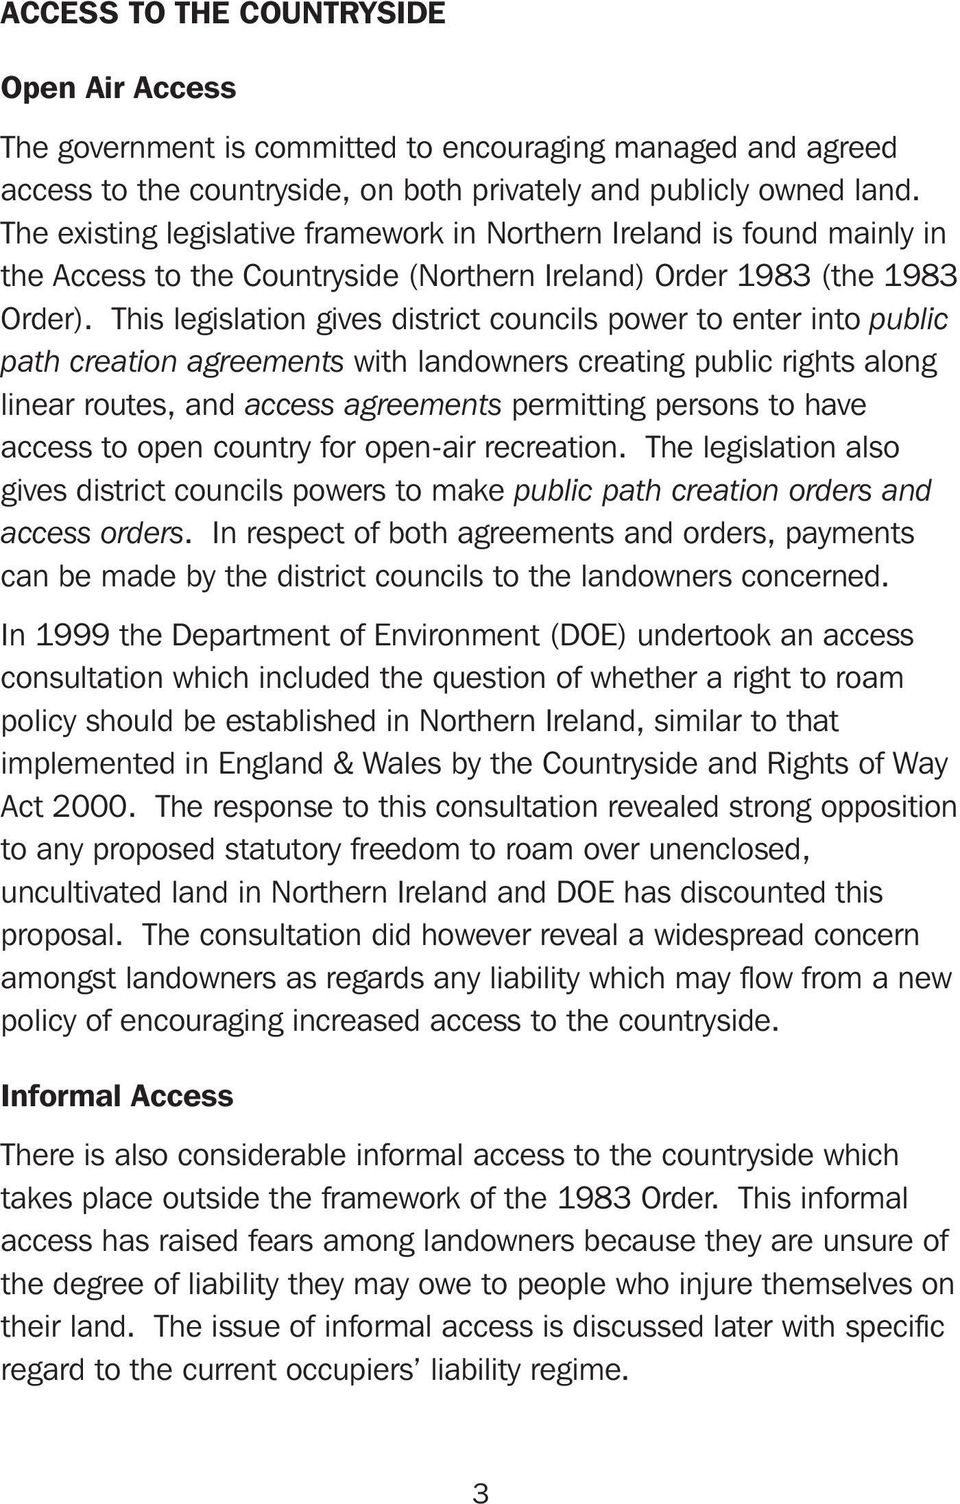 This legislation gives district councils power to enter into public path creation agreements with landowners creating public rights along linear routes, and access agreements permitting persons to